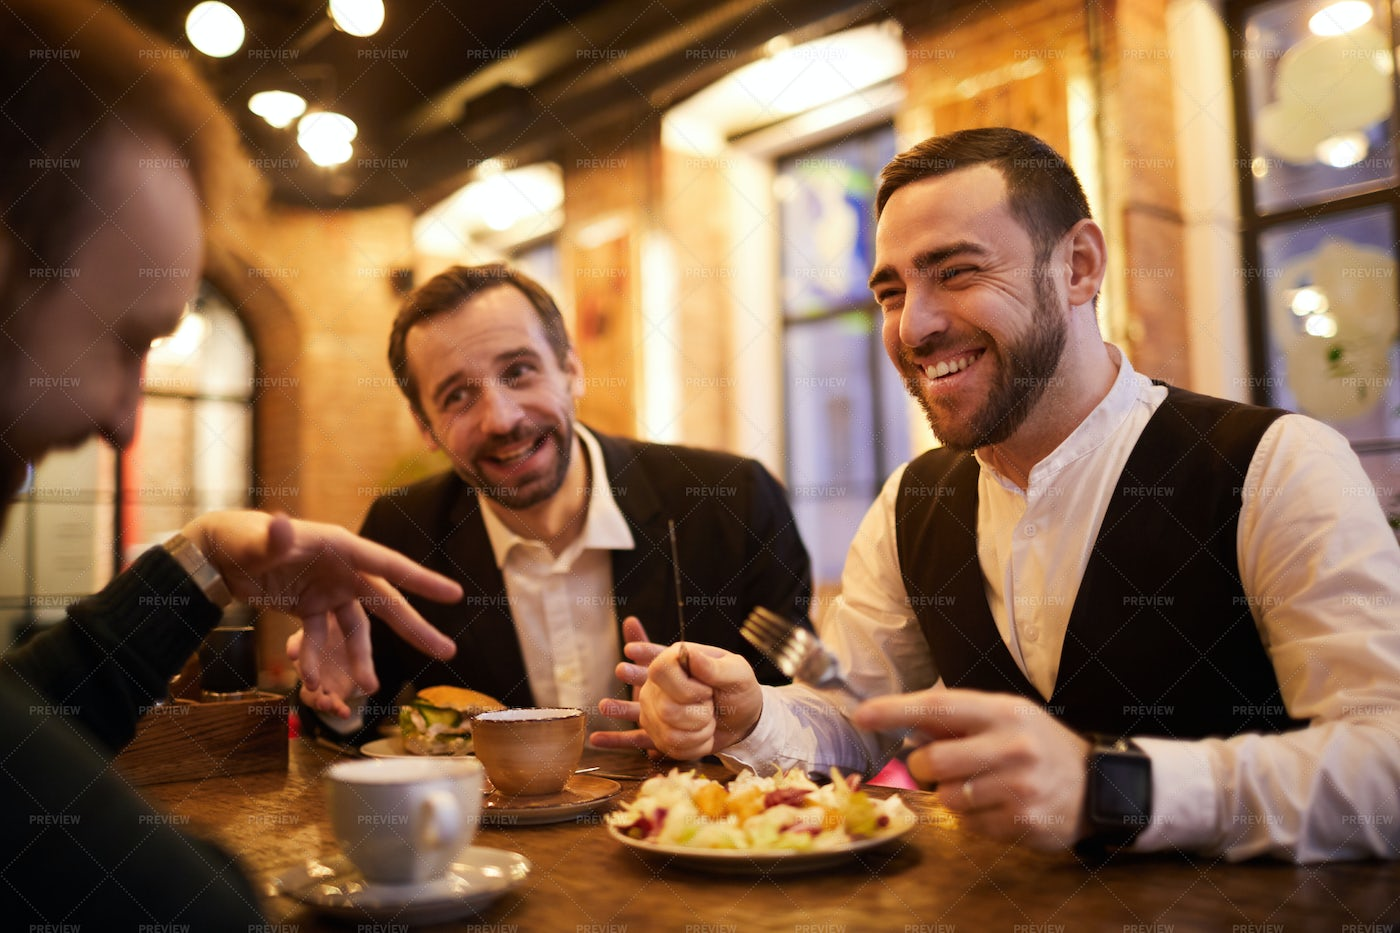 Business People In Restaurant: Stock Photos